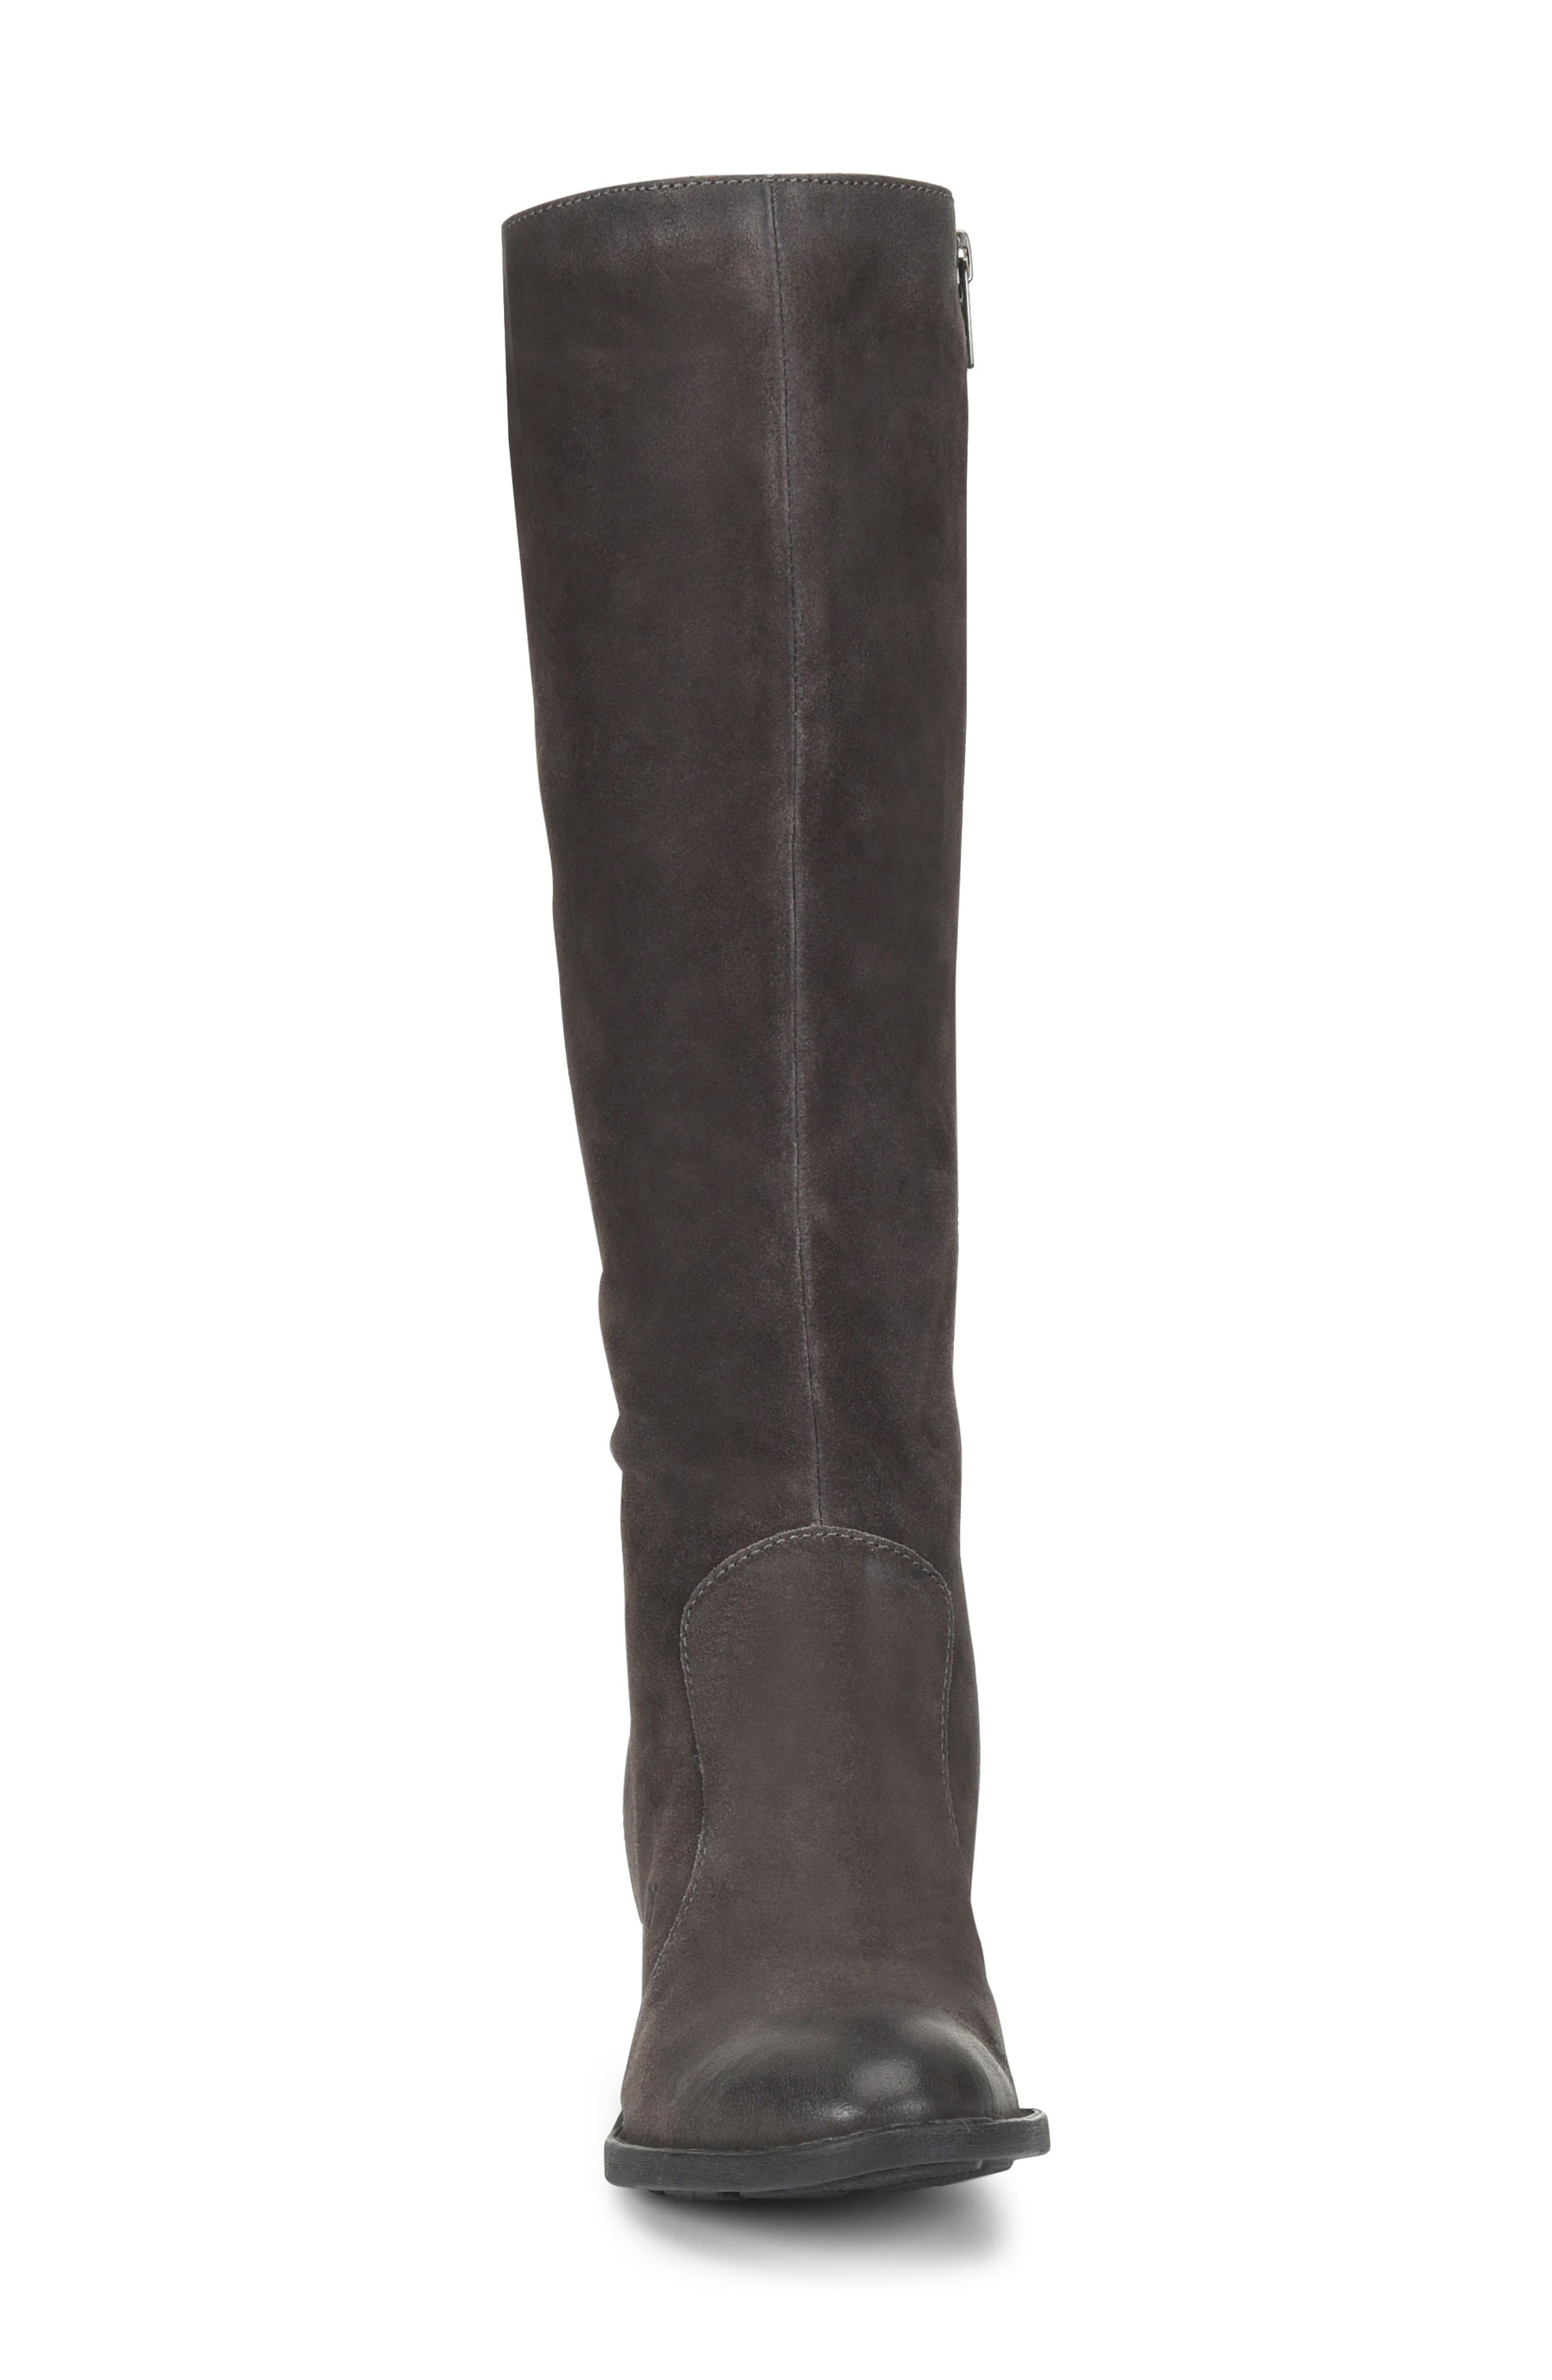 Felicia Knee High Boot,                             Alternate thumbnail 4, color,                             GREY DISTRESSED LEATHER